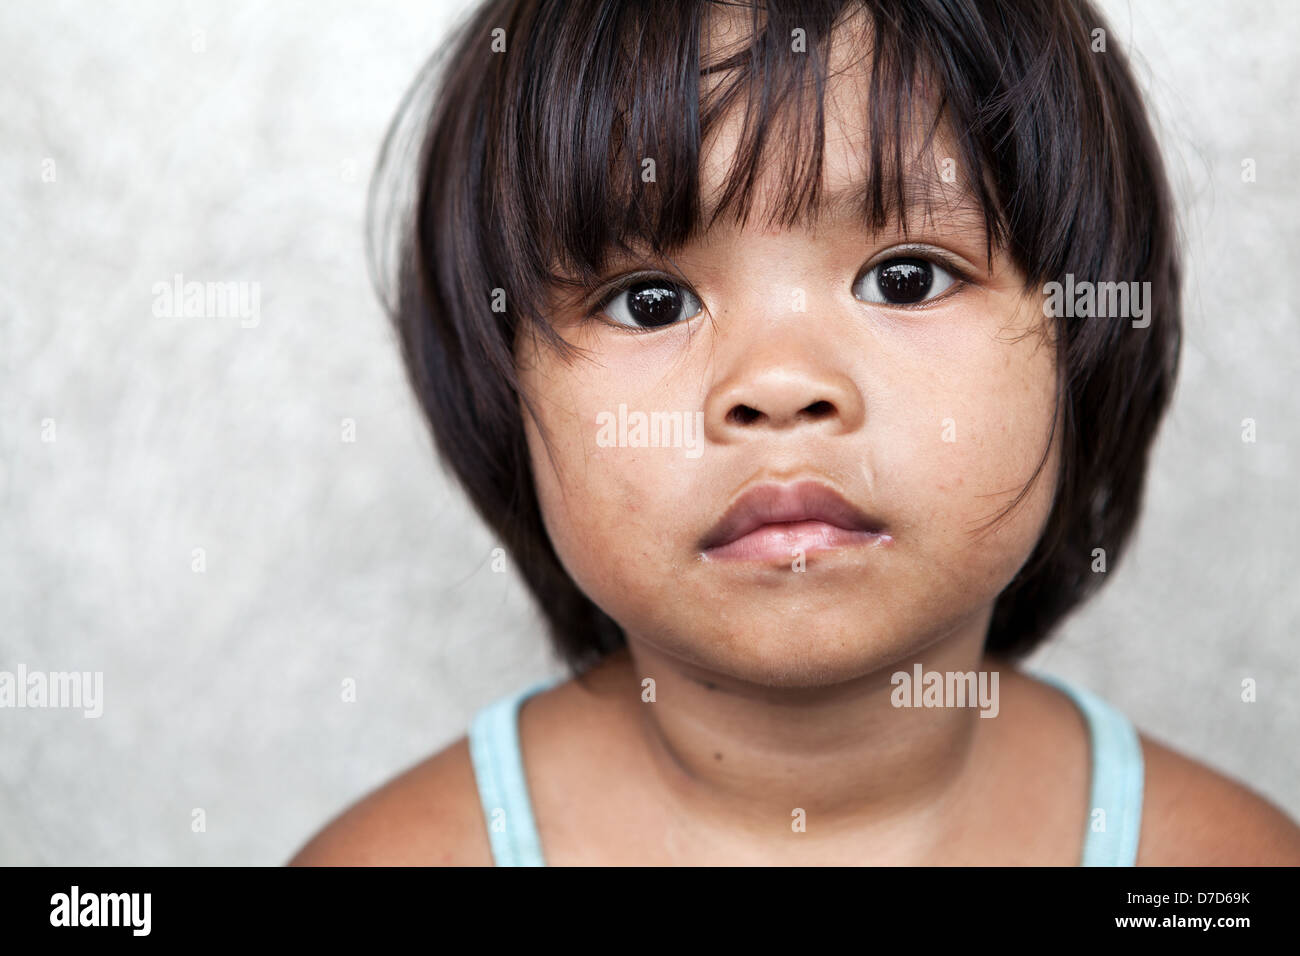 Young girl in the Philippines living in poverty against off-white wall - Stock Image